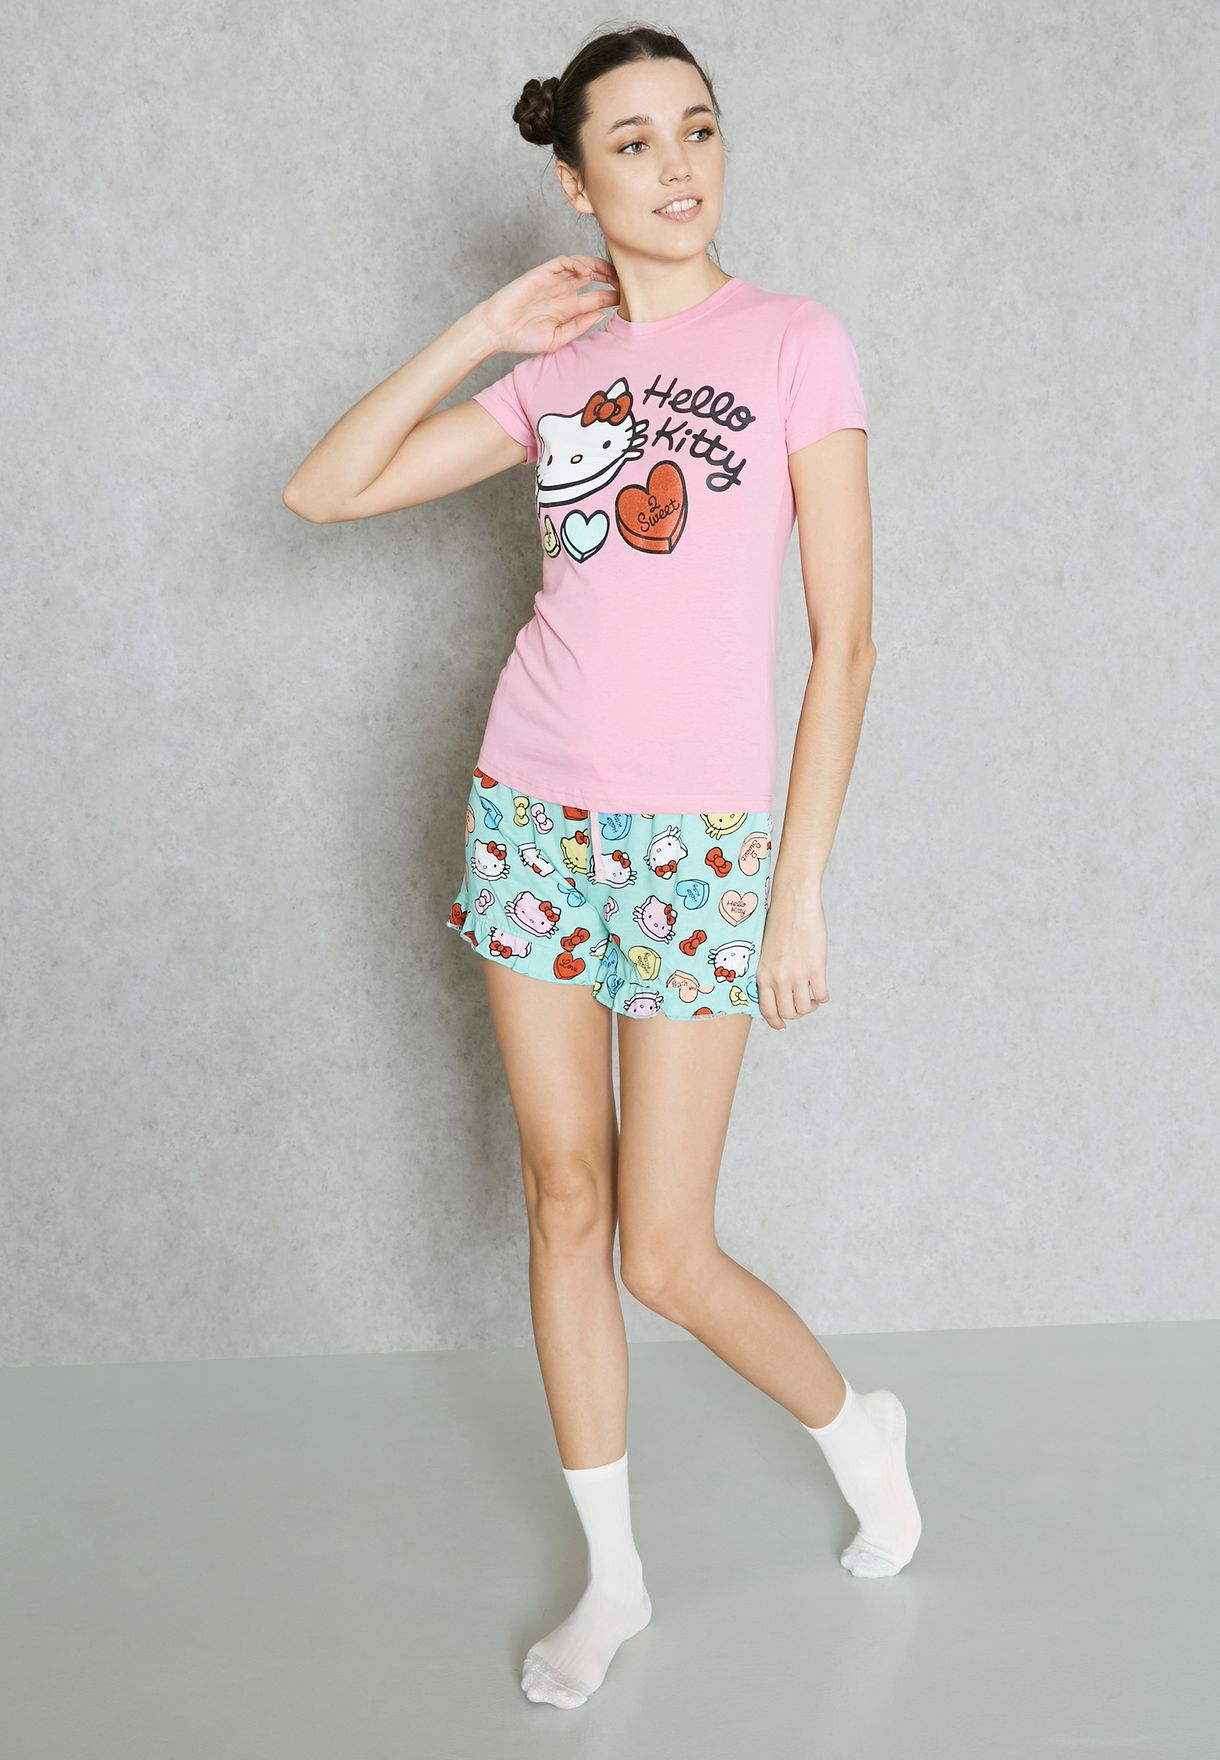 b1b4a8a90 Shop Hello Kitty multicolor Printed Pyjama Shorts Set MGTACC04 for ...